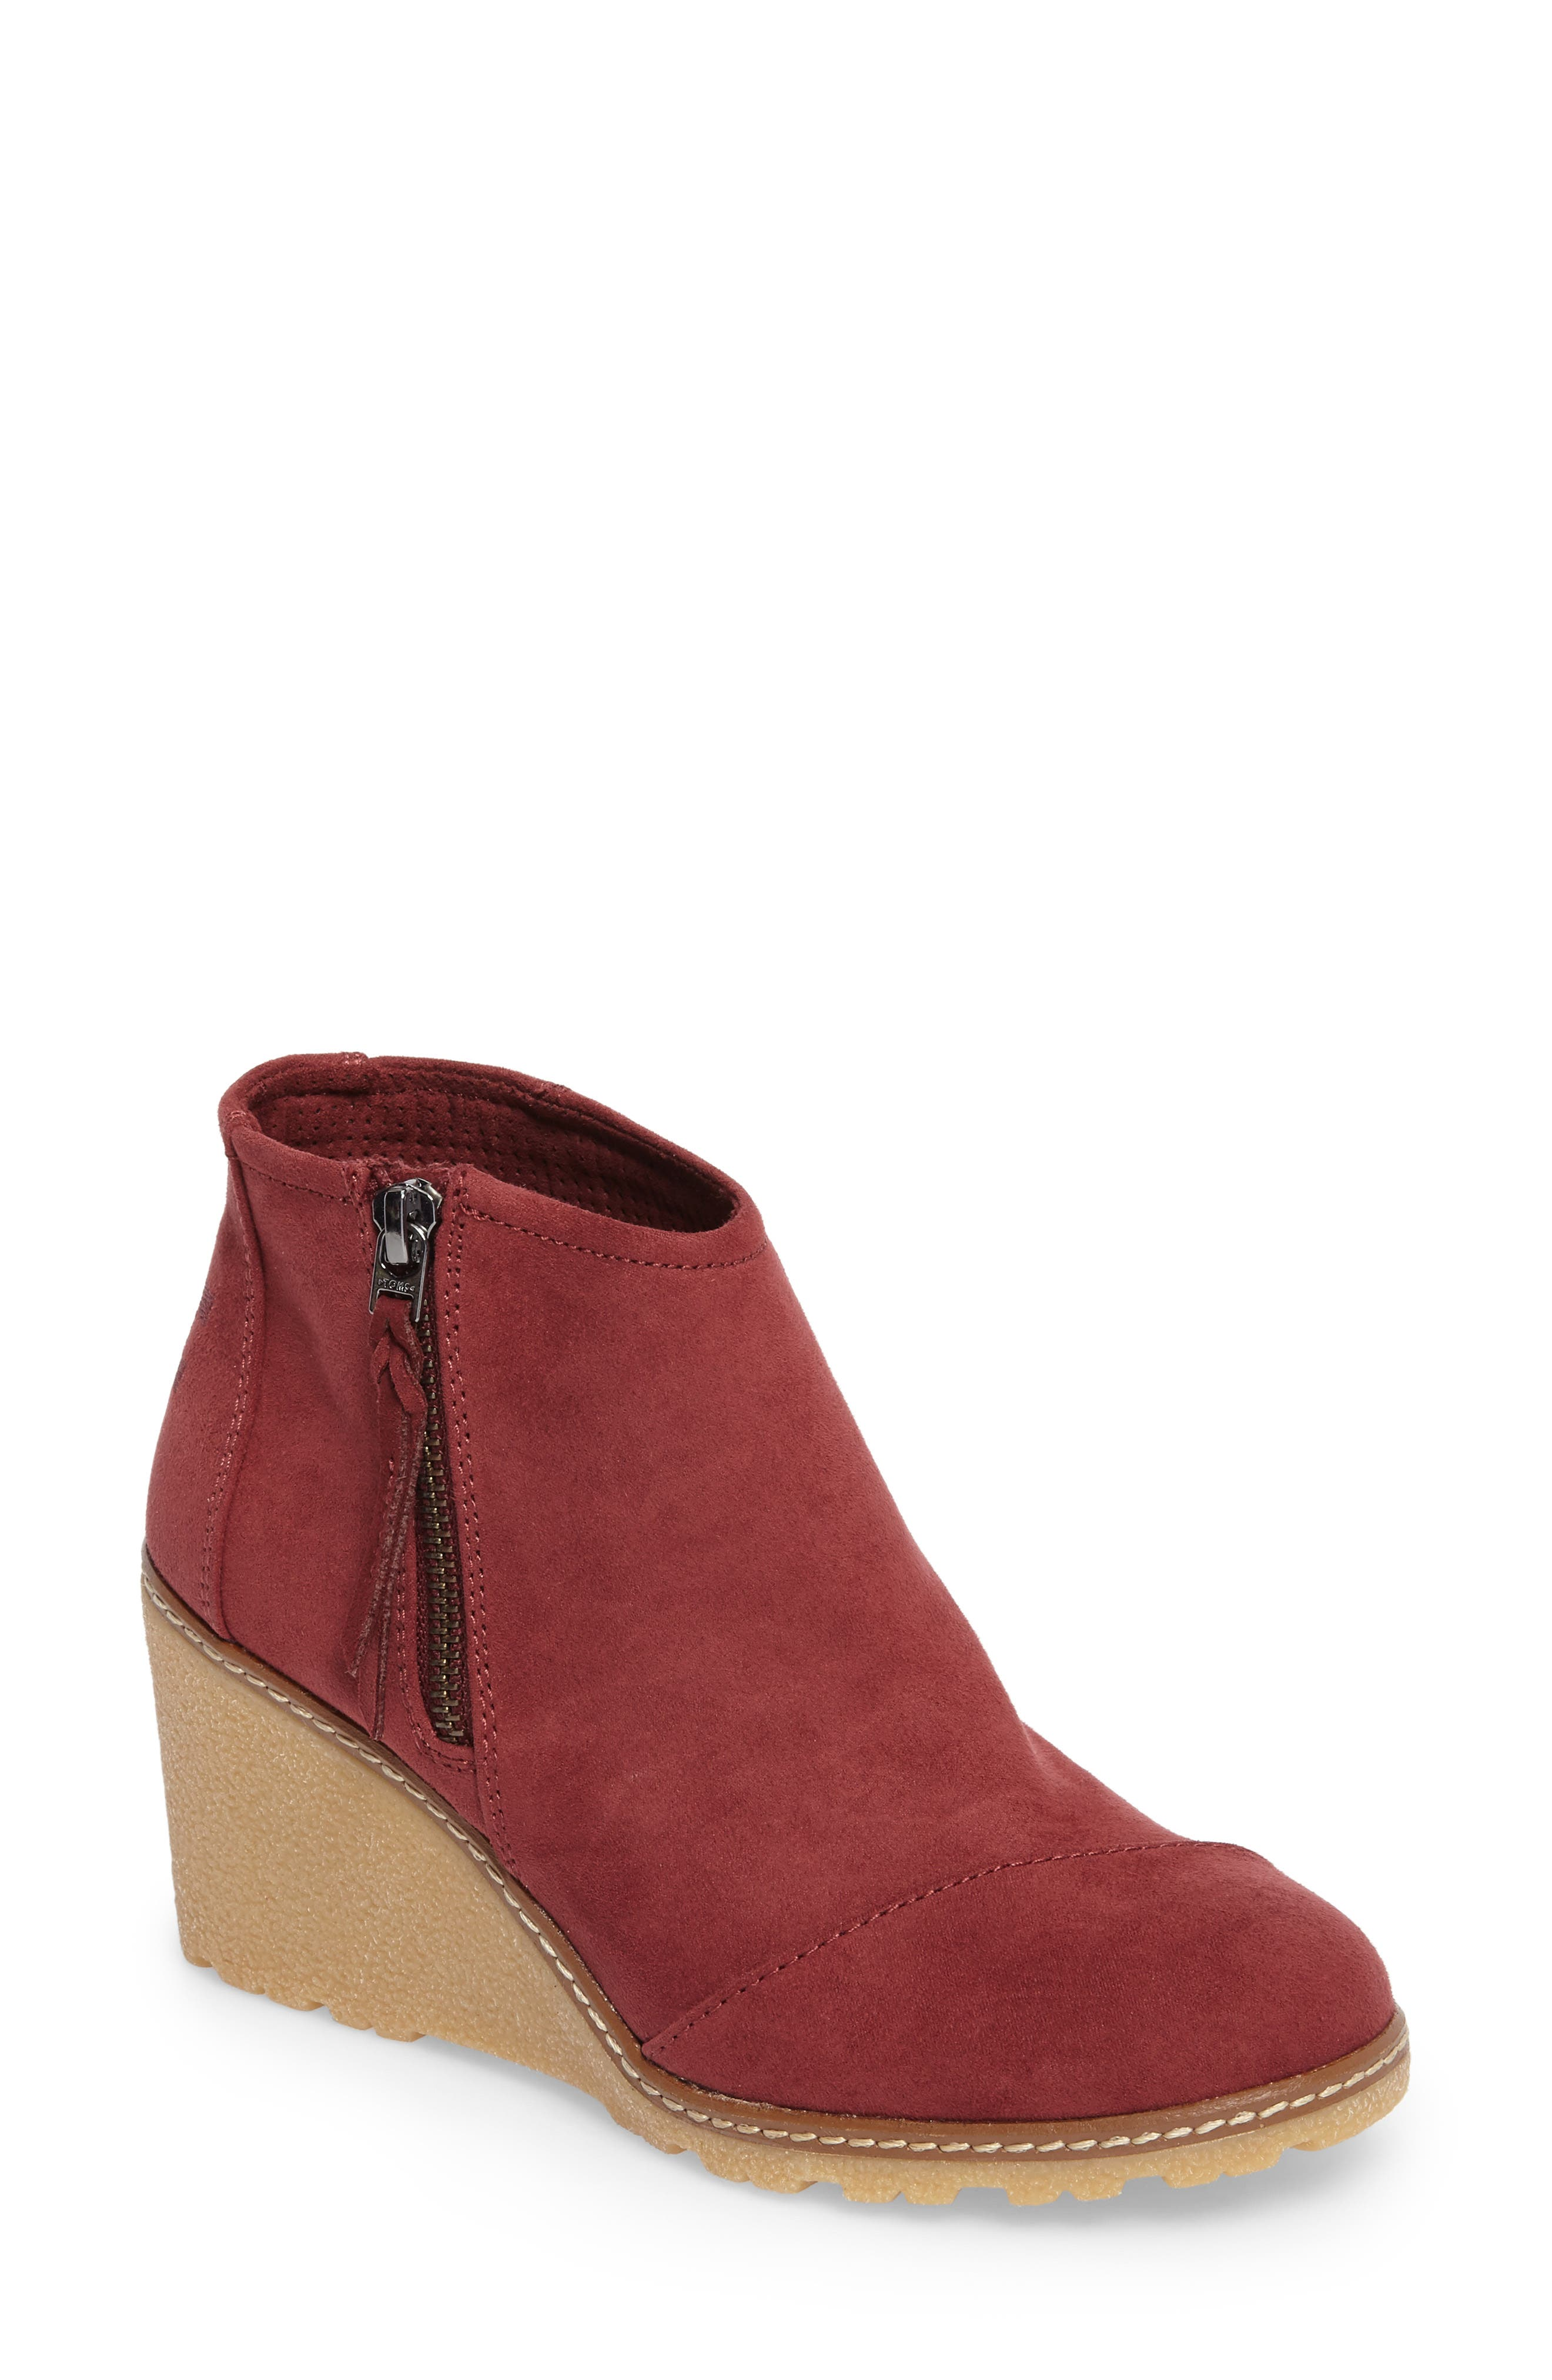 c6b88425975 TOMS AVERY WEDGE BOOTIE